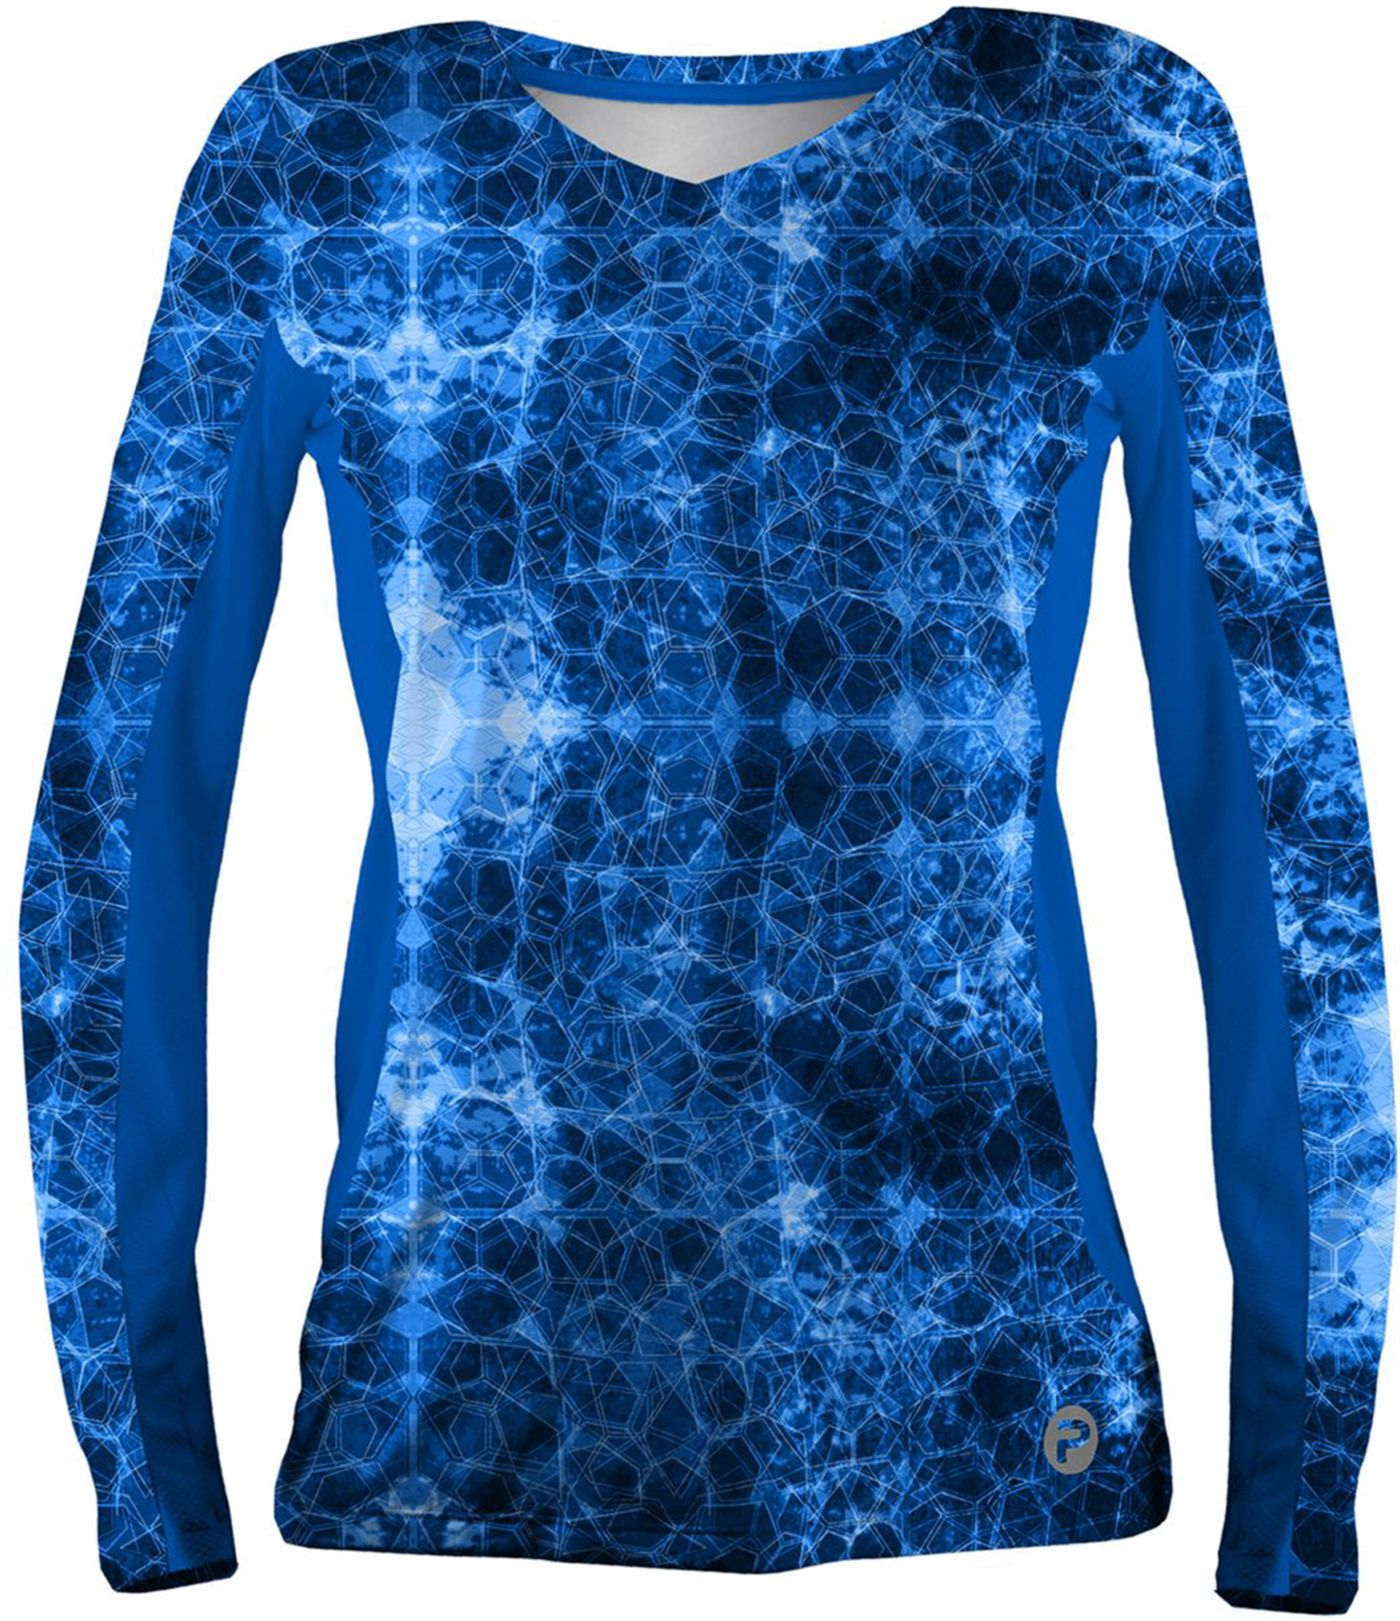 Pelagic Women's Solar Pro Hex Long Sleeve V-Neck Shirt